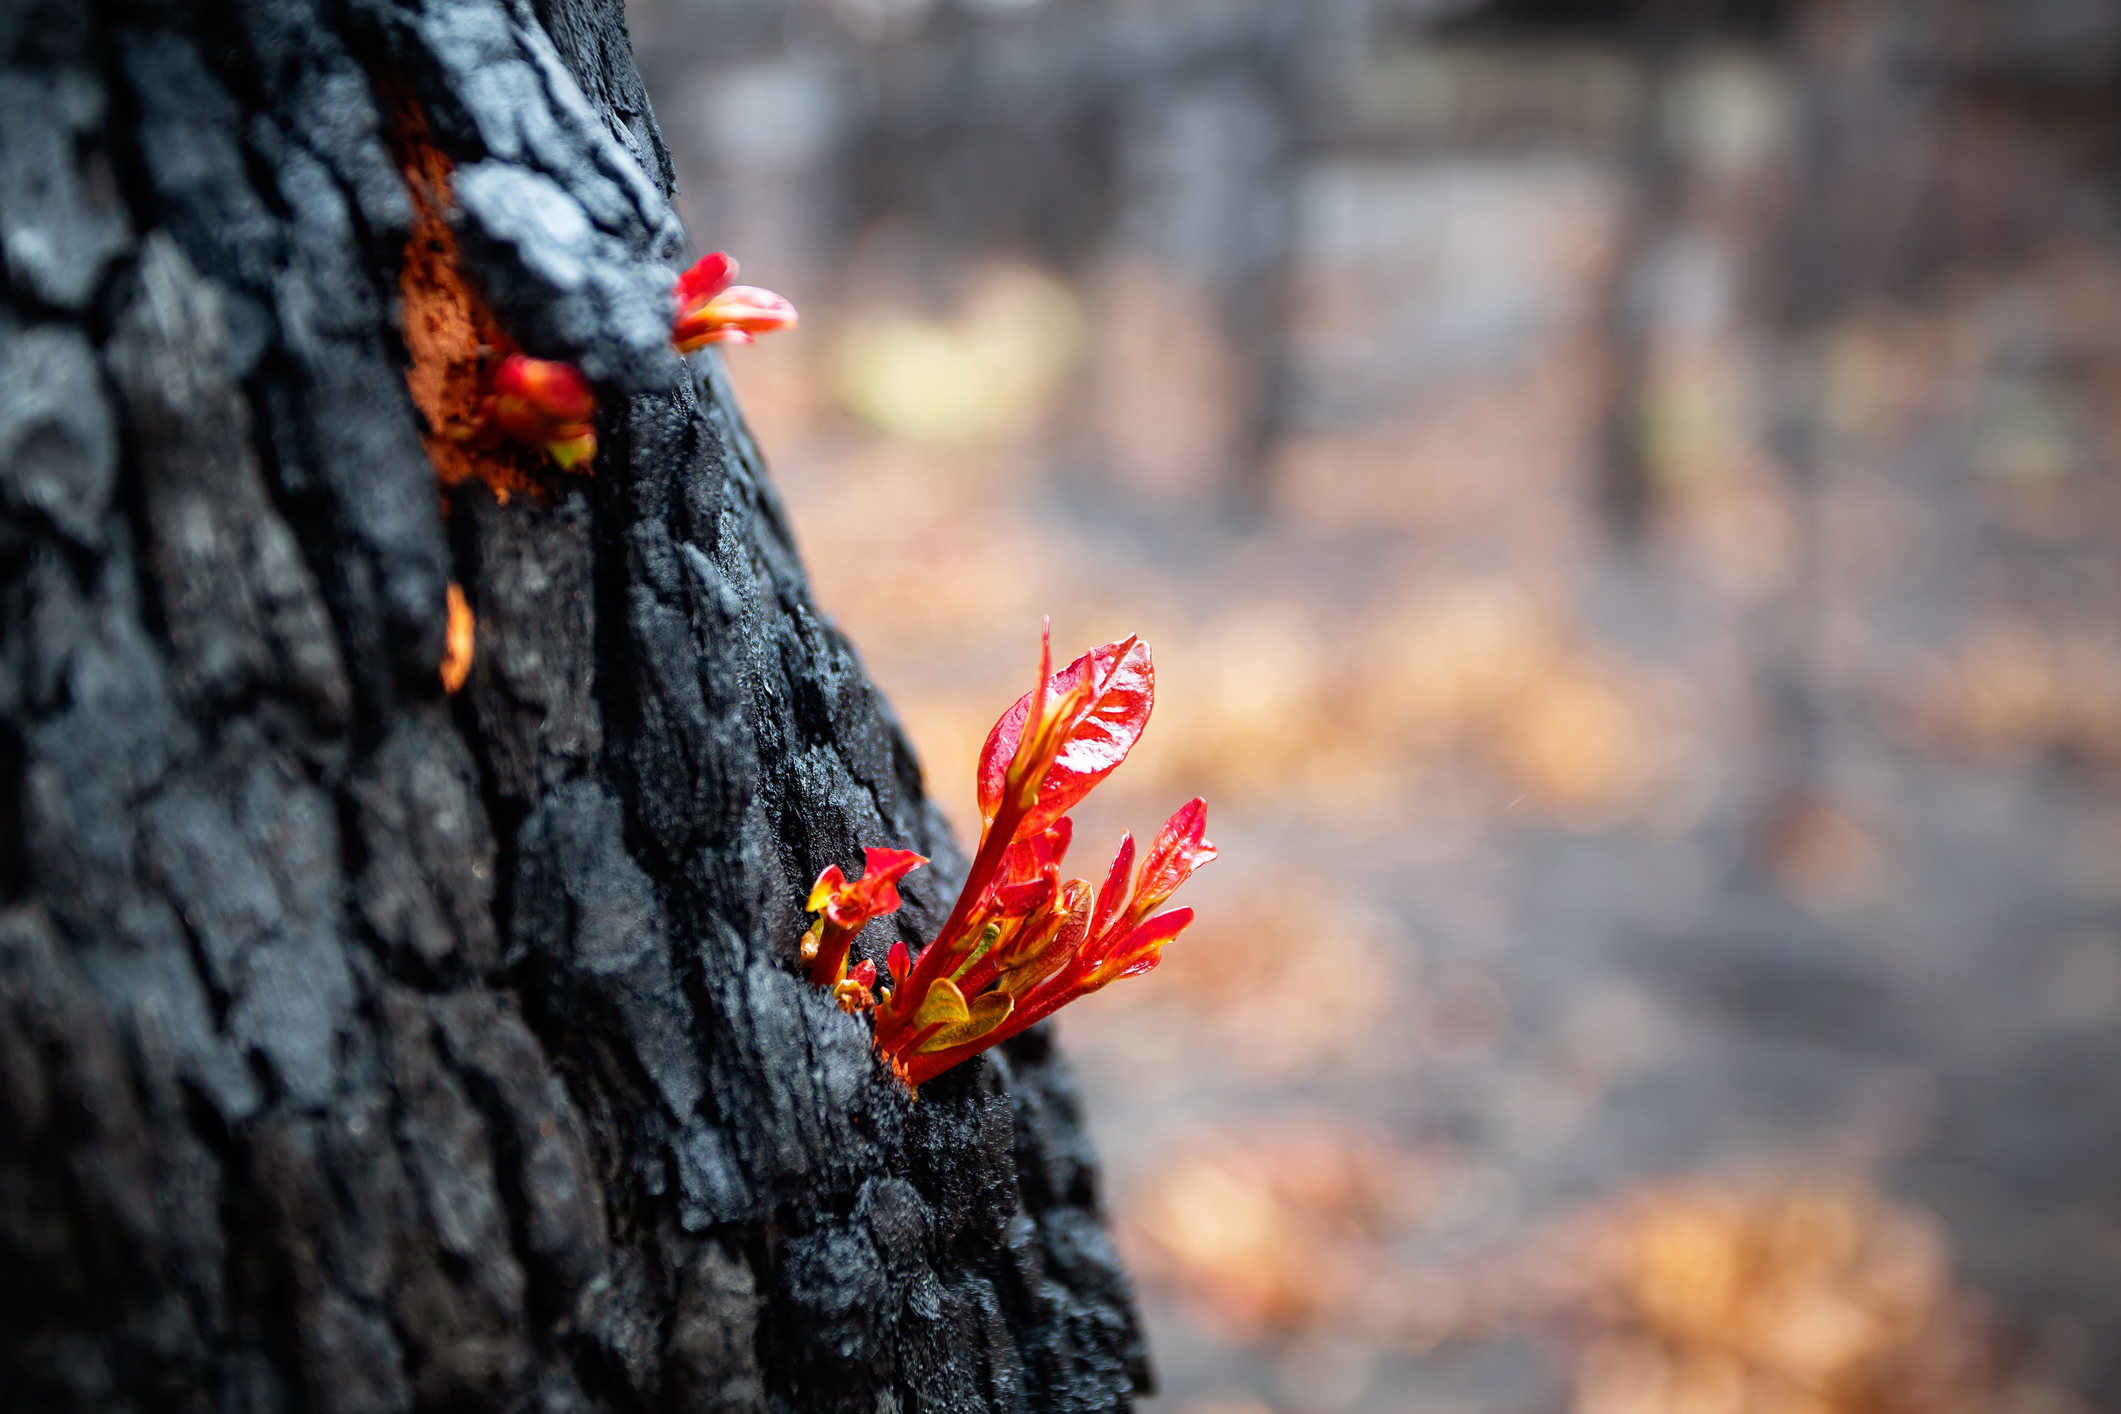 Funding open for Round 2 of Bushfire Recovery Grants